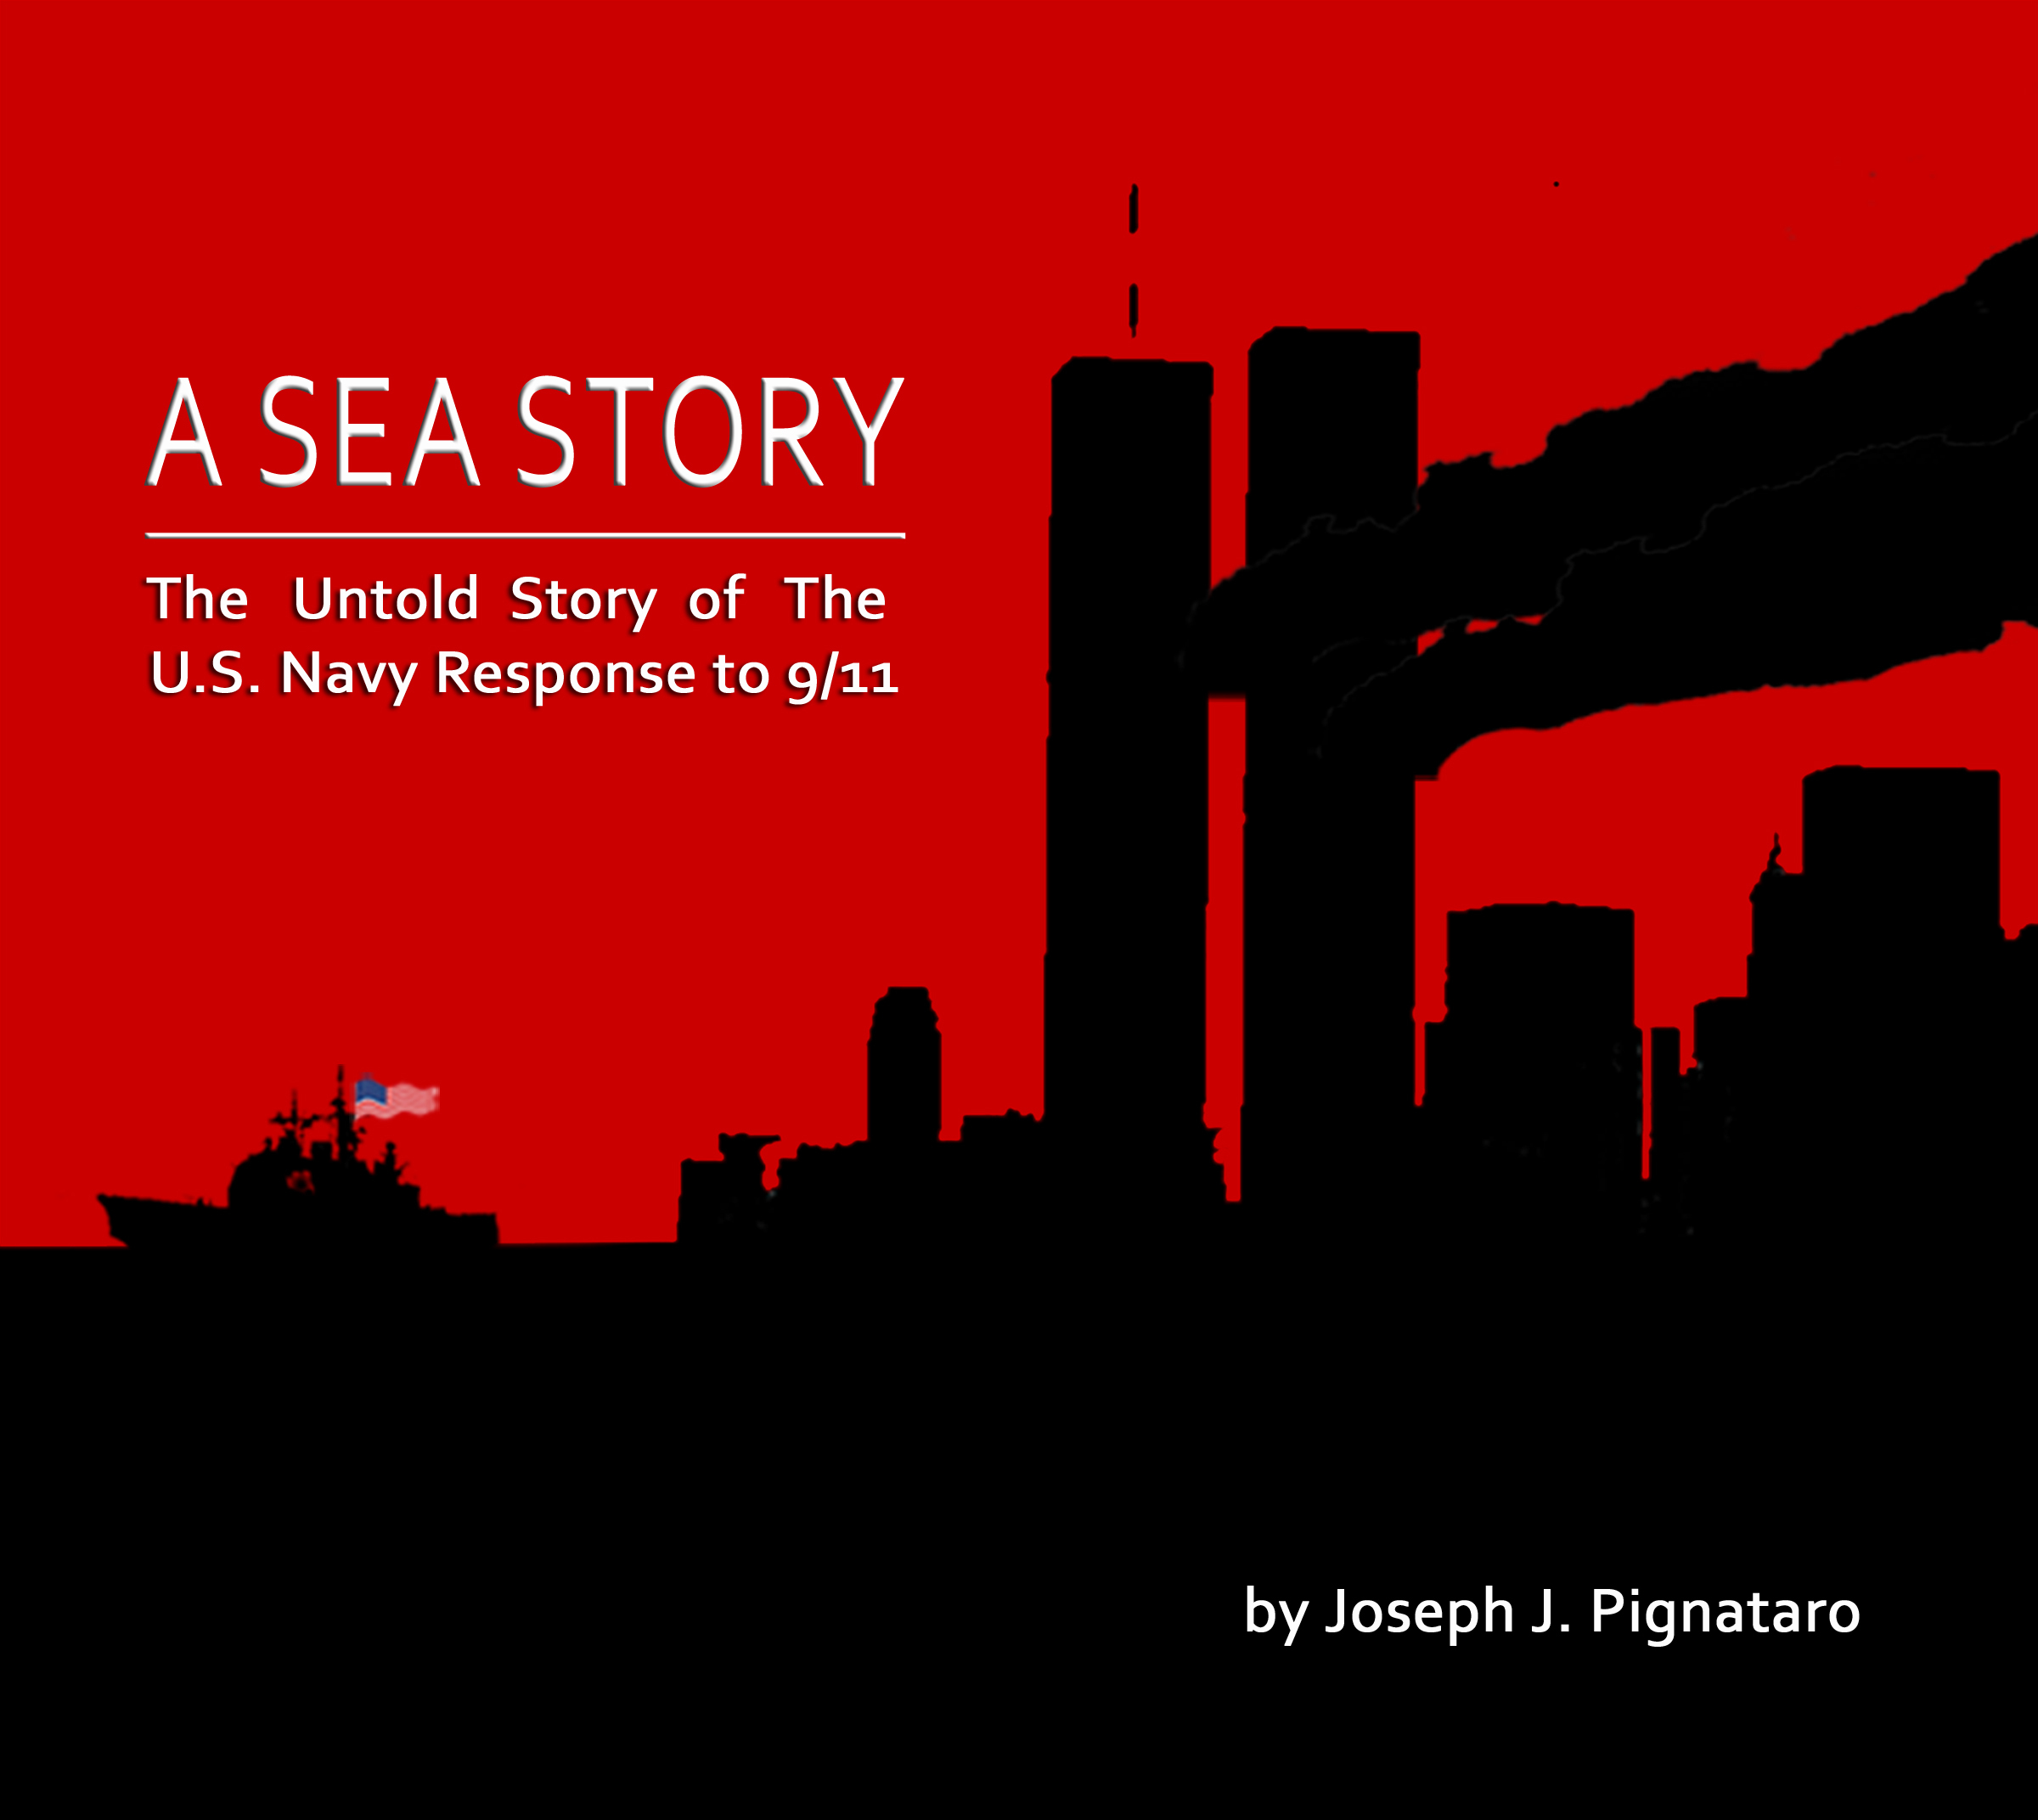 A SEA STORY: THE UNTOLD STORY OF THE U.S. NAVY RESPONSE TO 9/11.